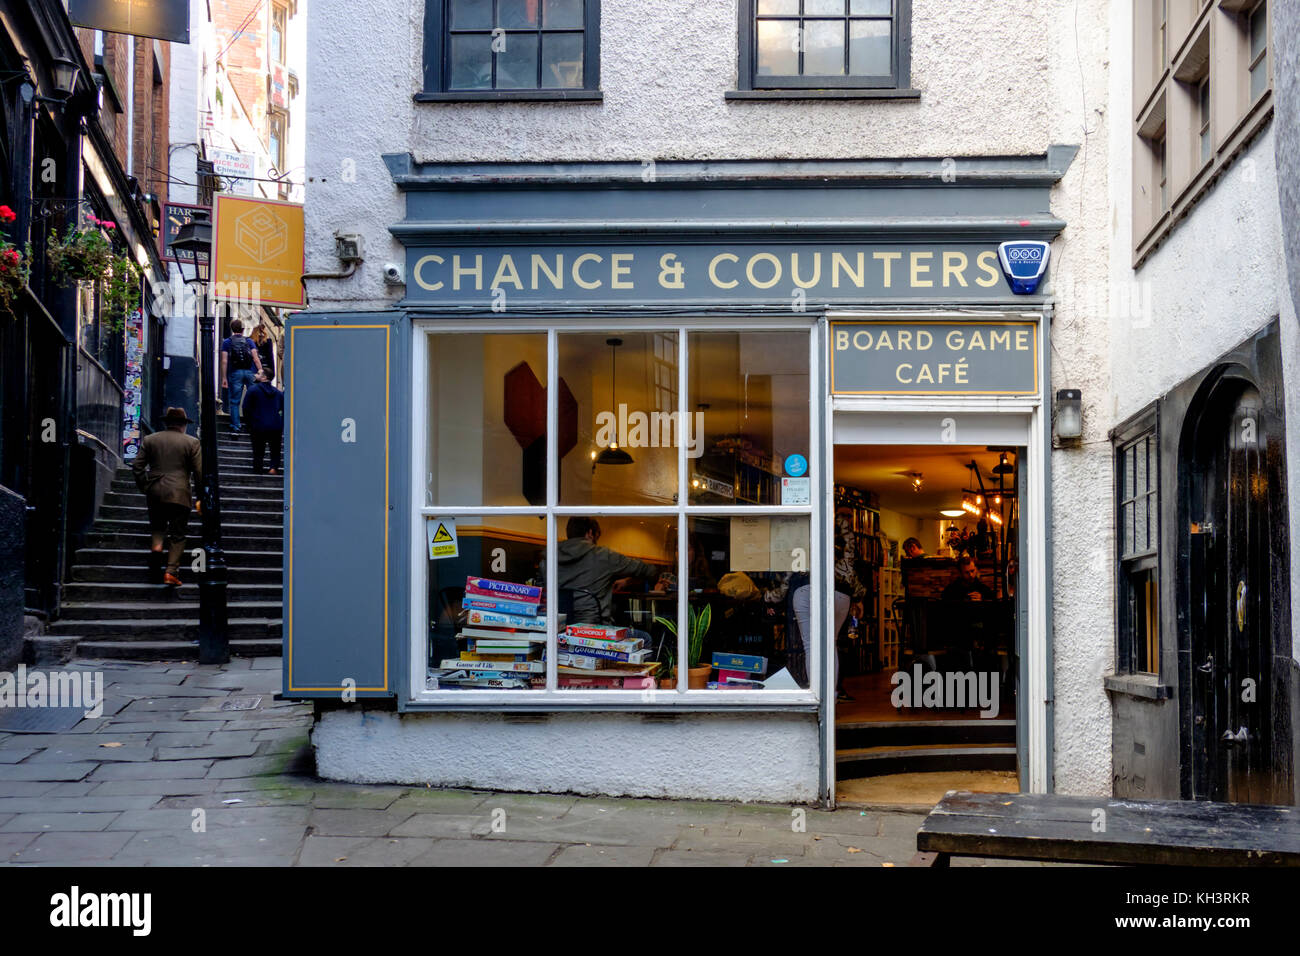 Chance & Counters a board game shop, Christmas Steps,Bristol england UK - Stock Image